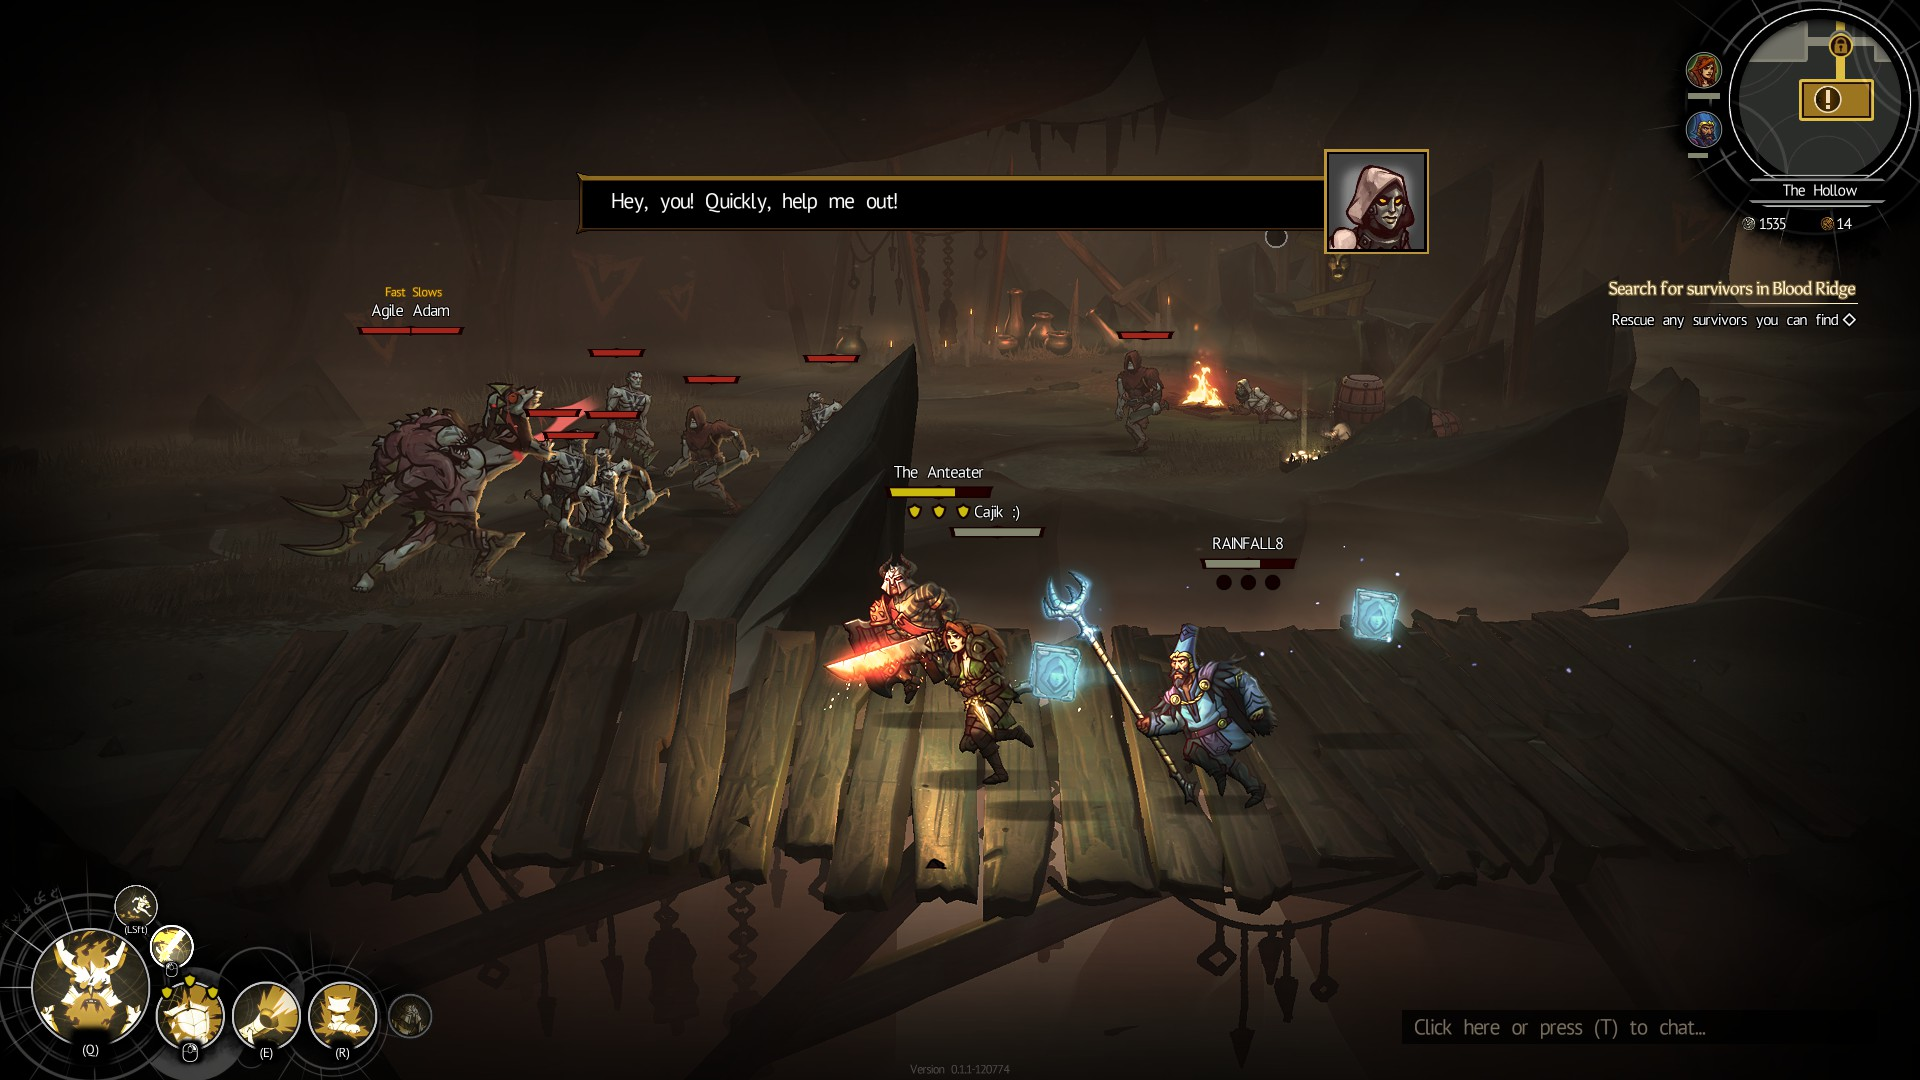 Three players run left across a wooden bridge. In the distance, someone asks for help, menaced by a dozen monsters.